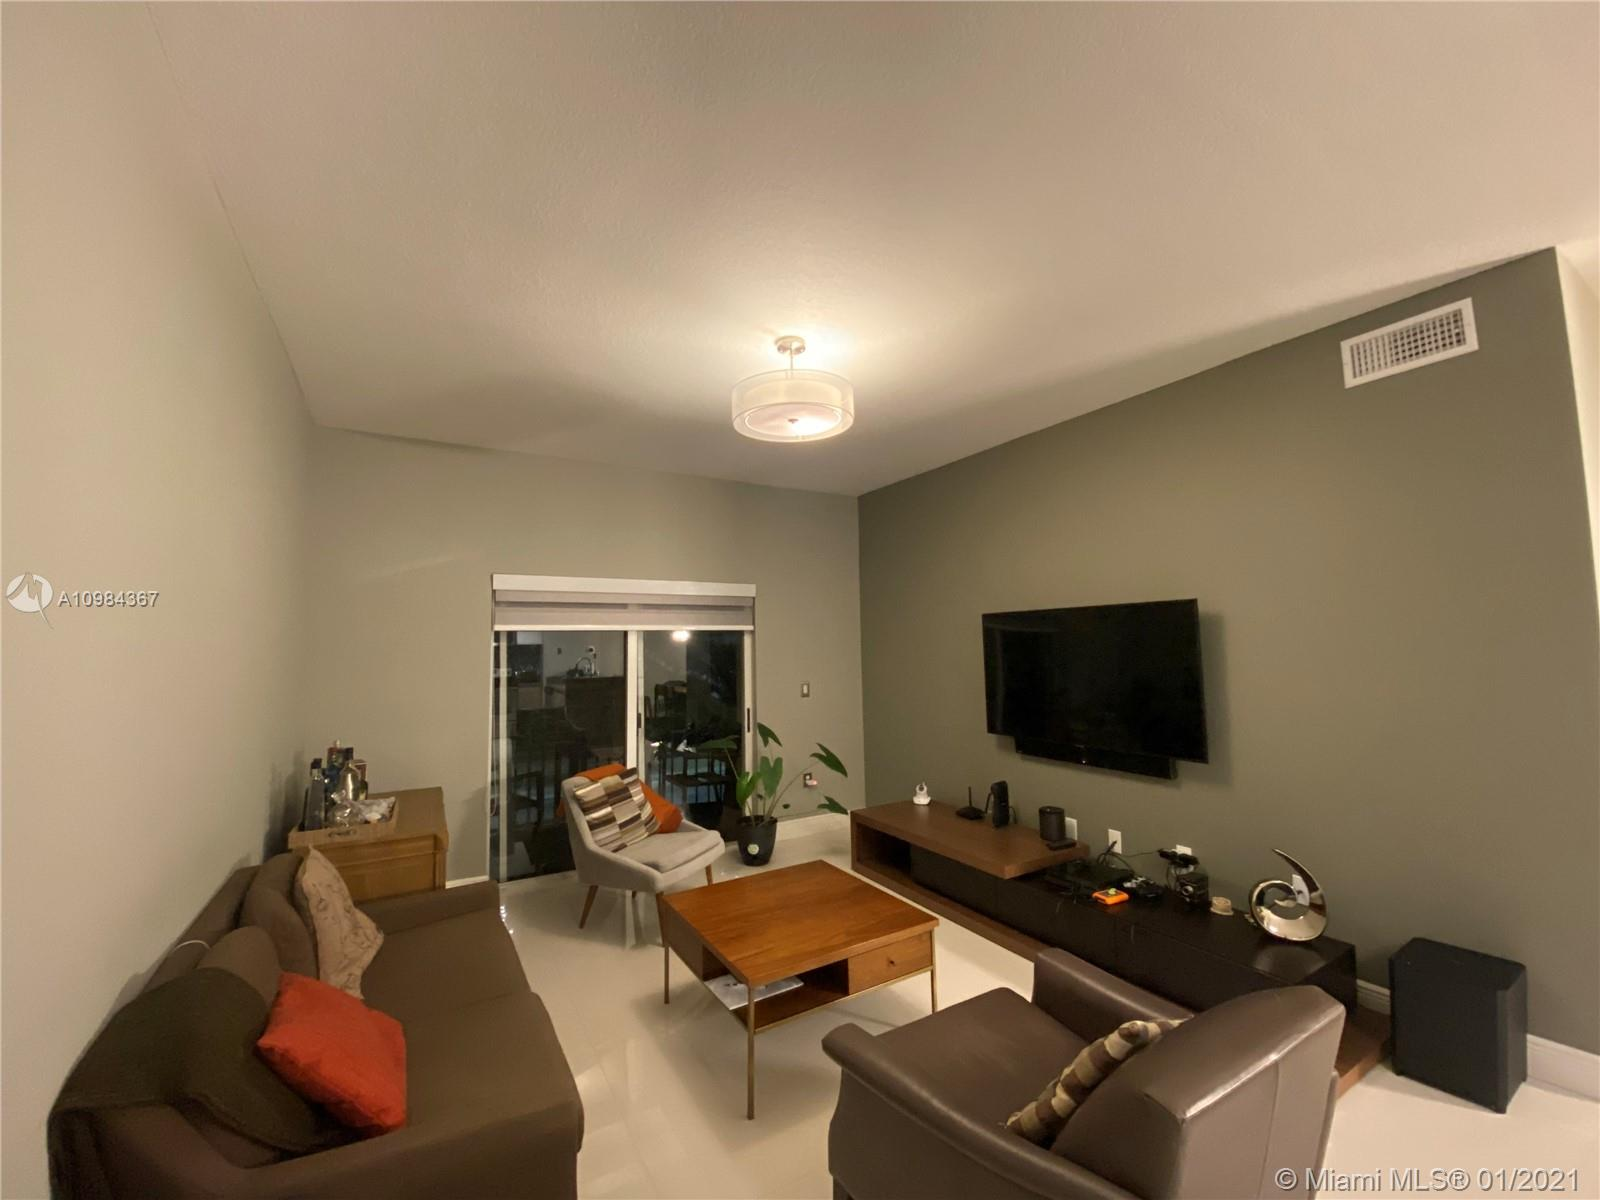 7340 NW 114th Ave # 204, Doral, Florida 33178, 2 Bedrooms Bedrooms, ,2 BathroomsBathrooms,Residential,For Sale,7340 NW 114th Ave # 204,A10984367